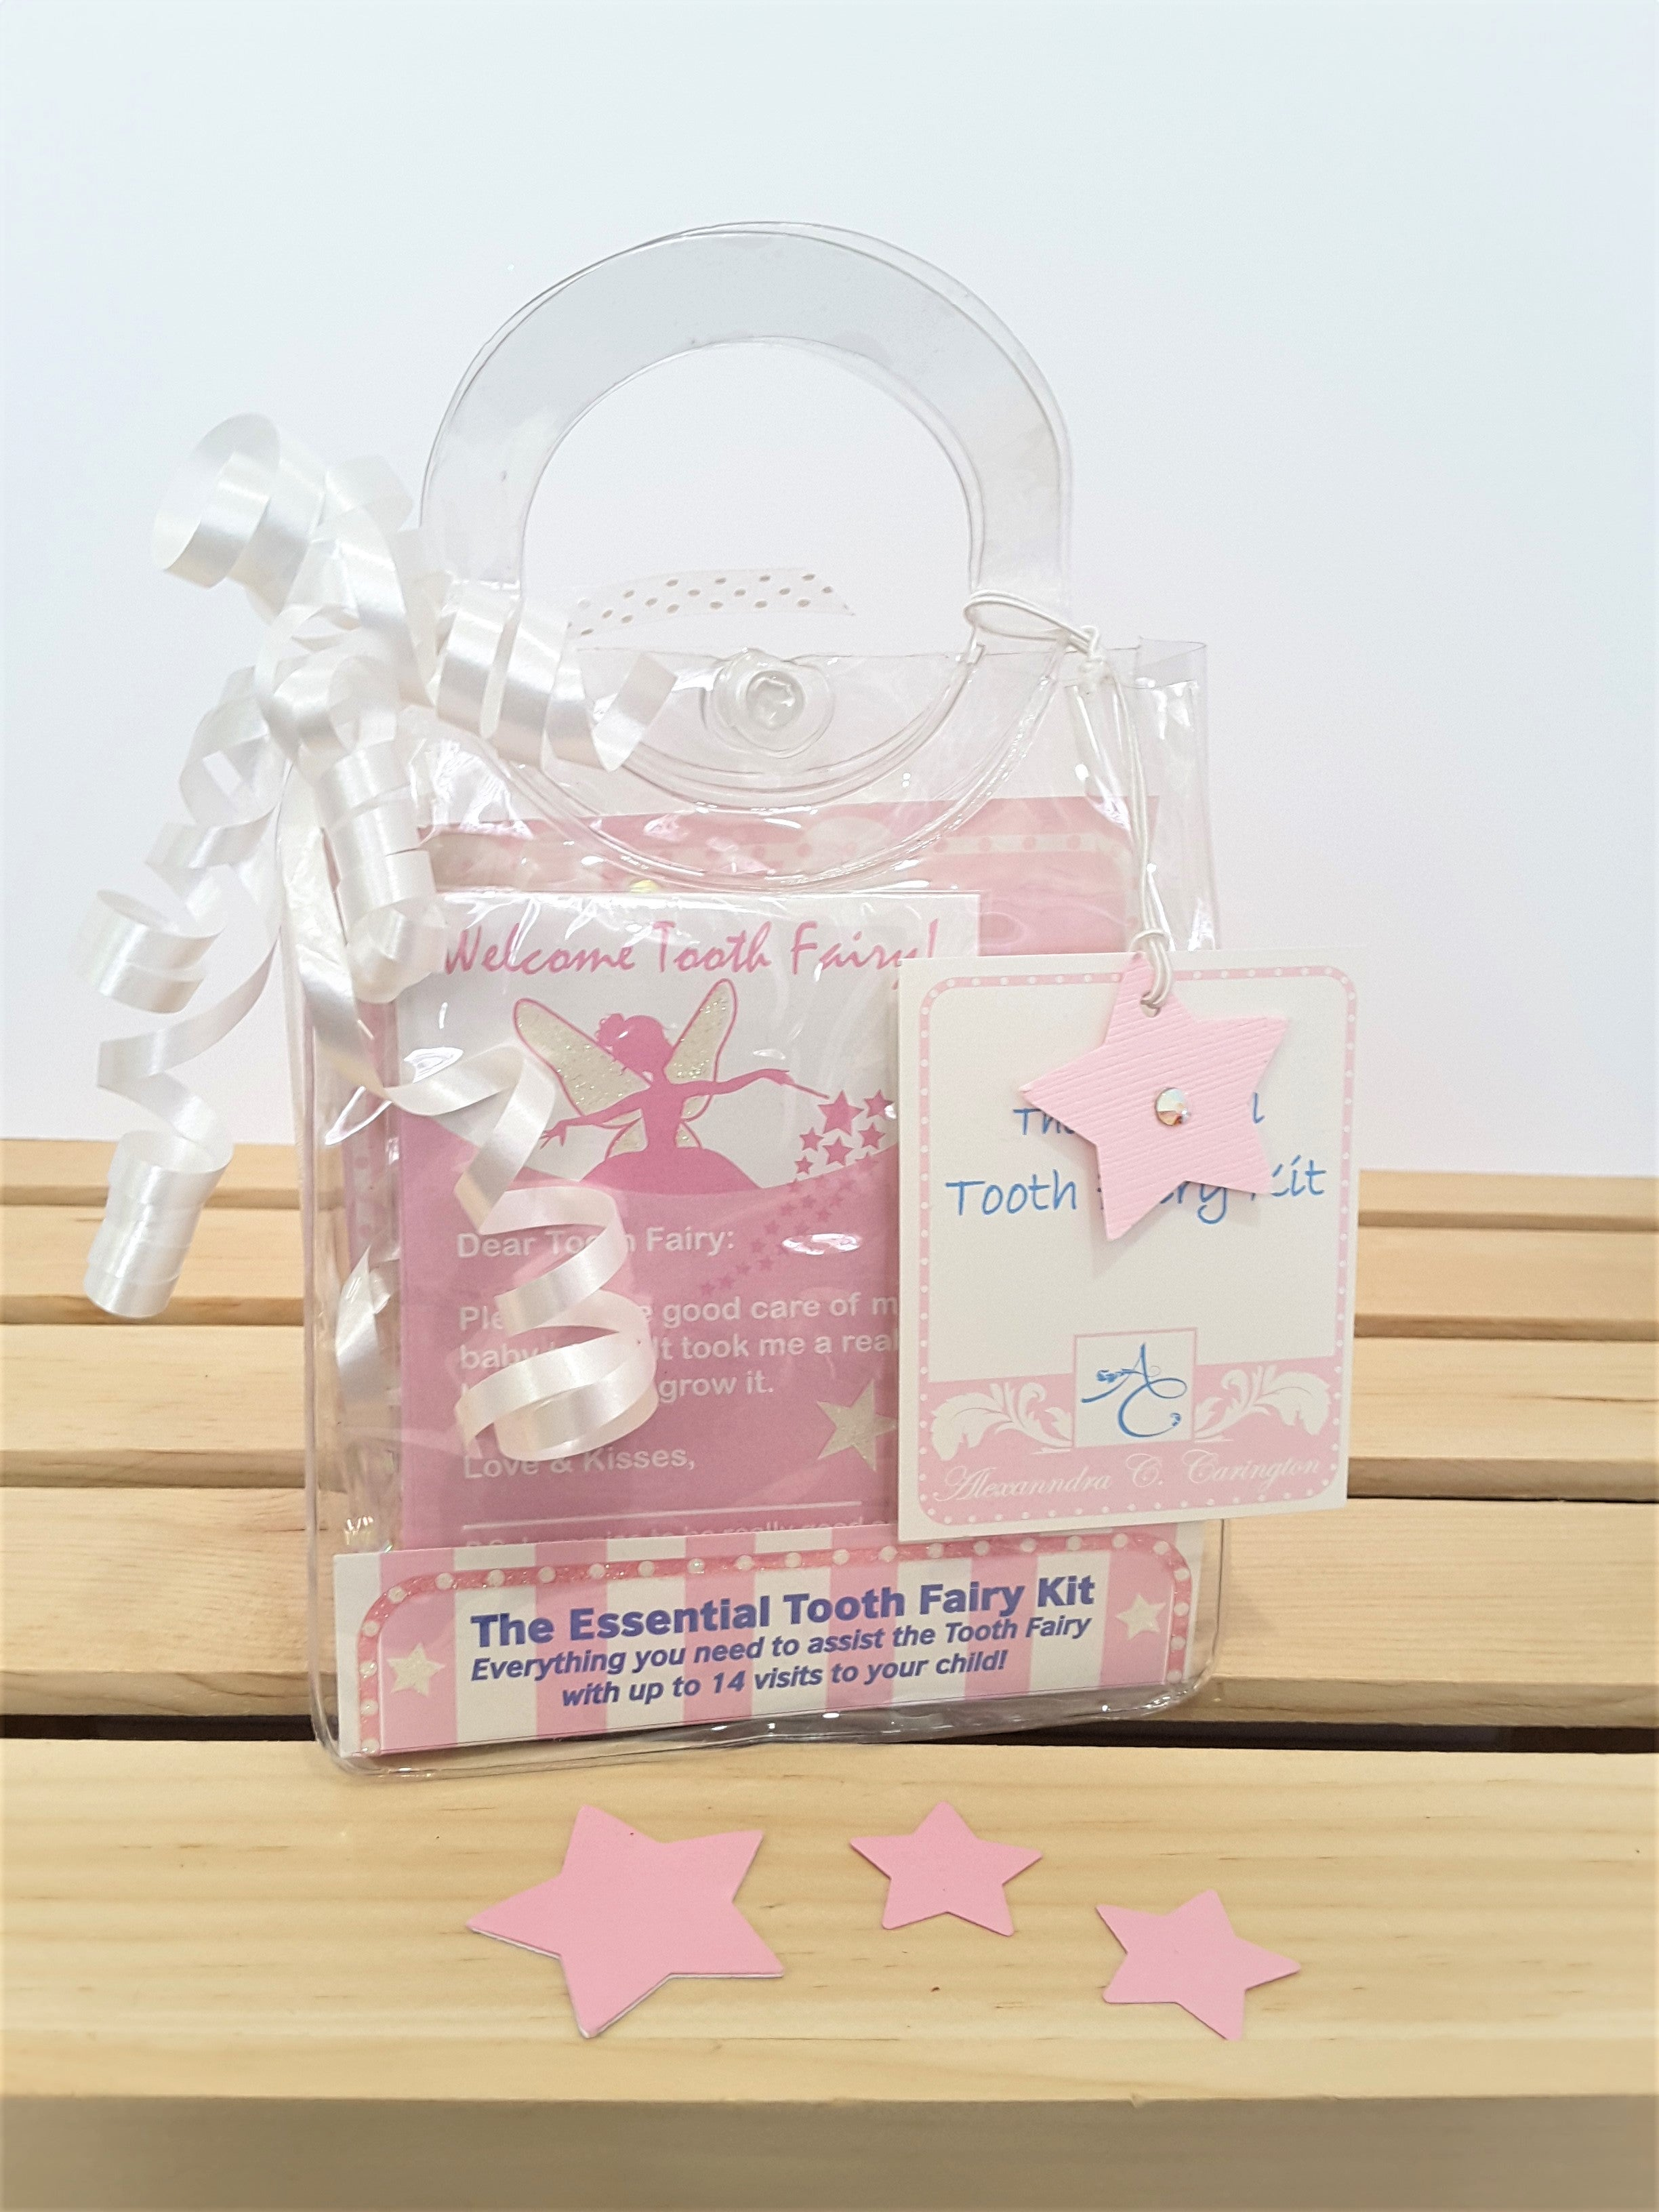 Tooth Fairy Kit in pink